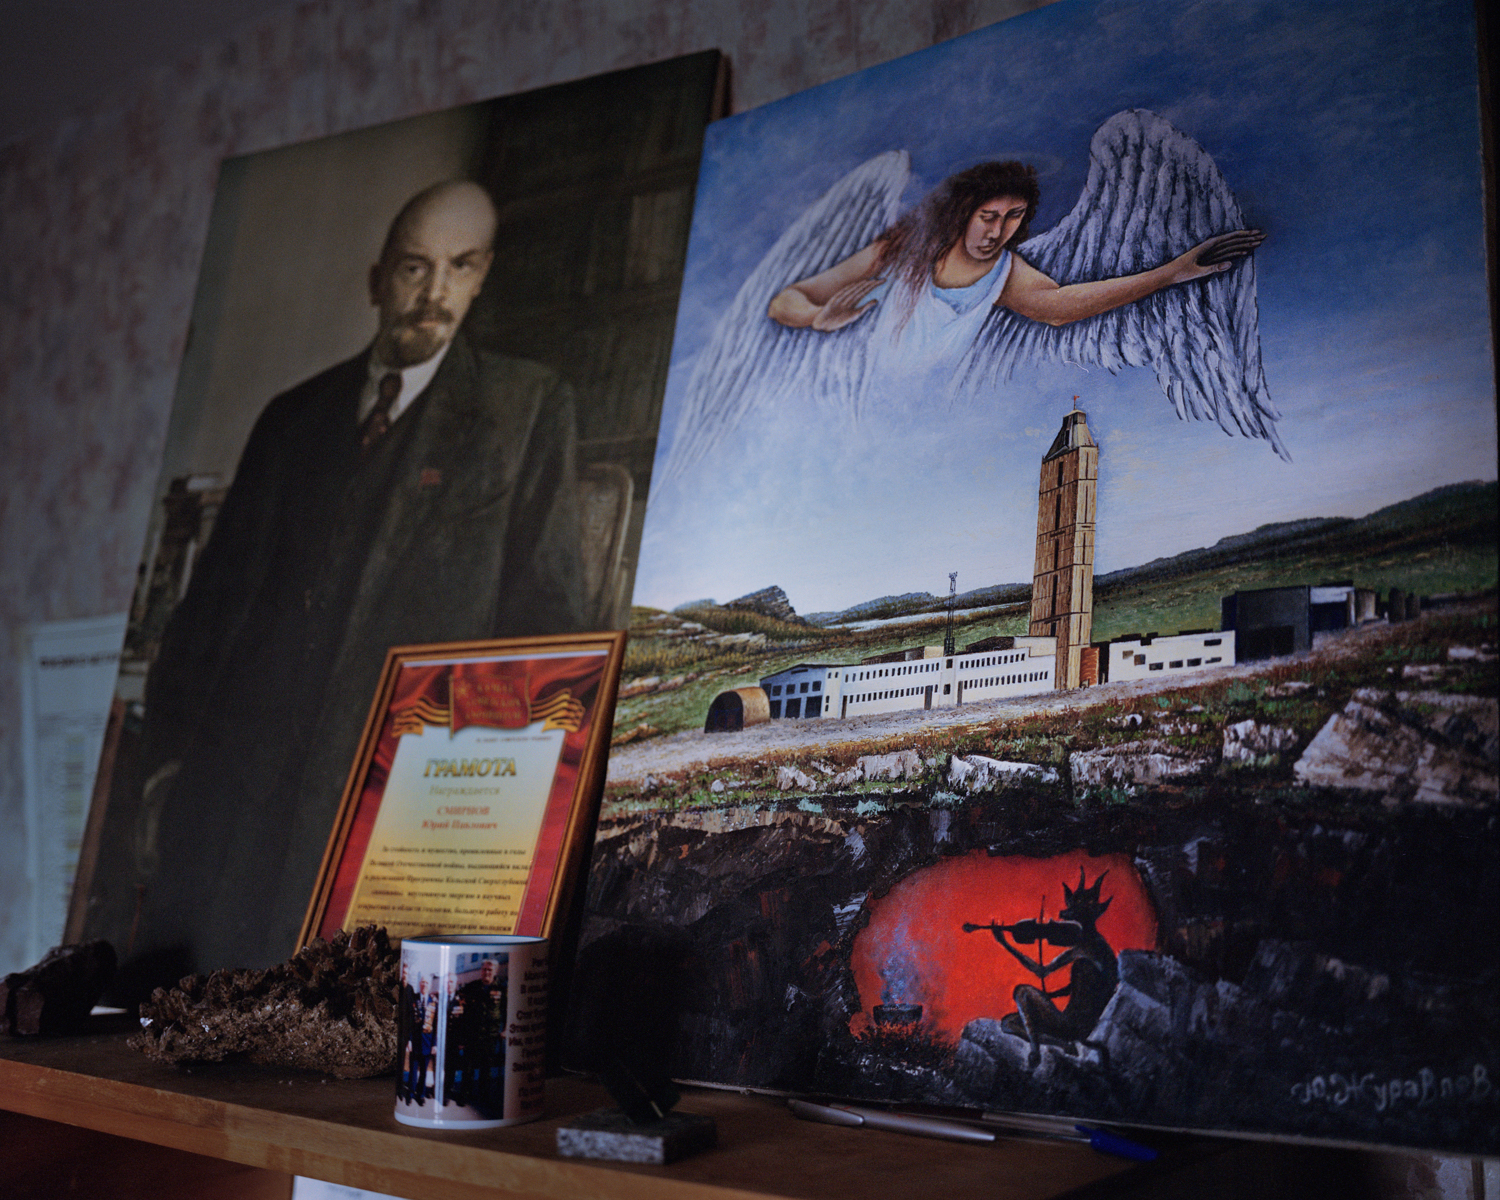 Smirnov displayed a portrait of Lenin, left, next to a painting depicting the urban legend that the sounds of hell could be heard coming from the bottom of the borehole.